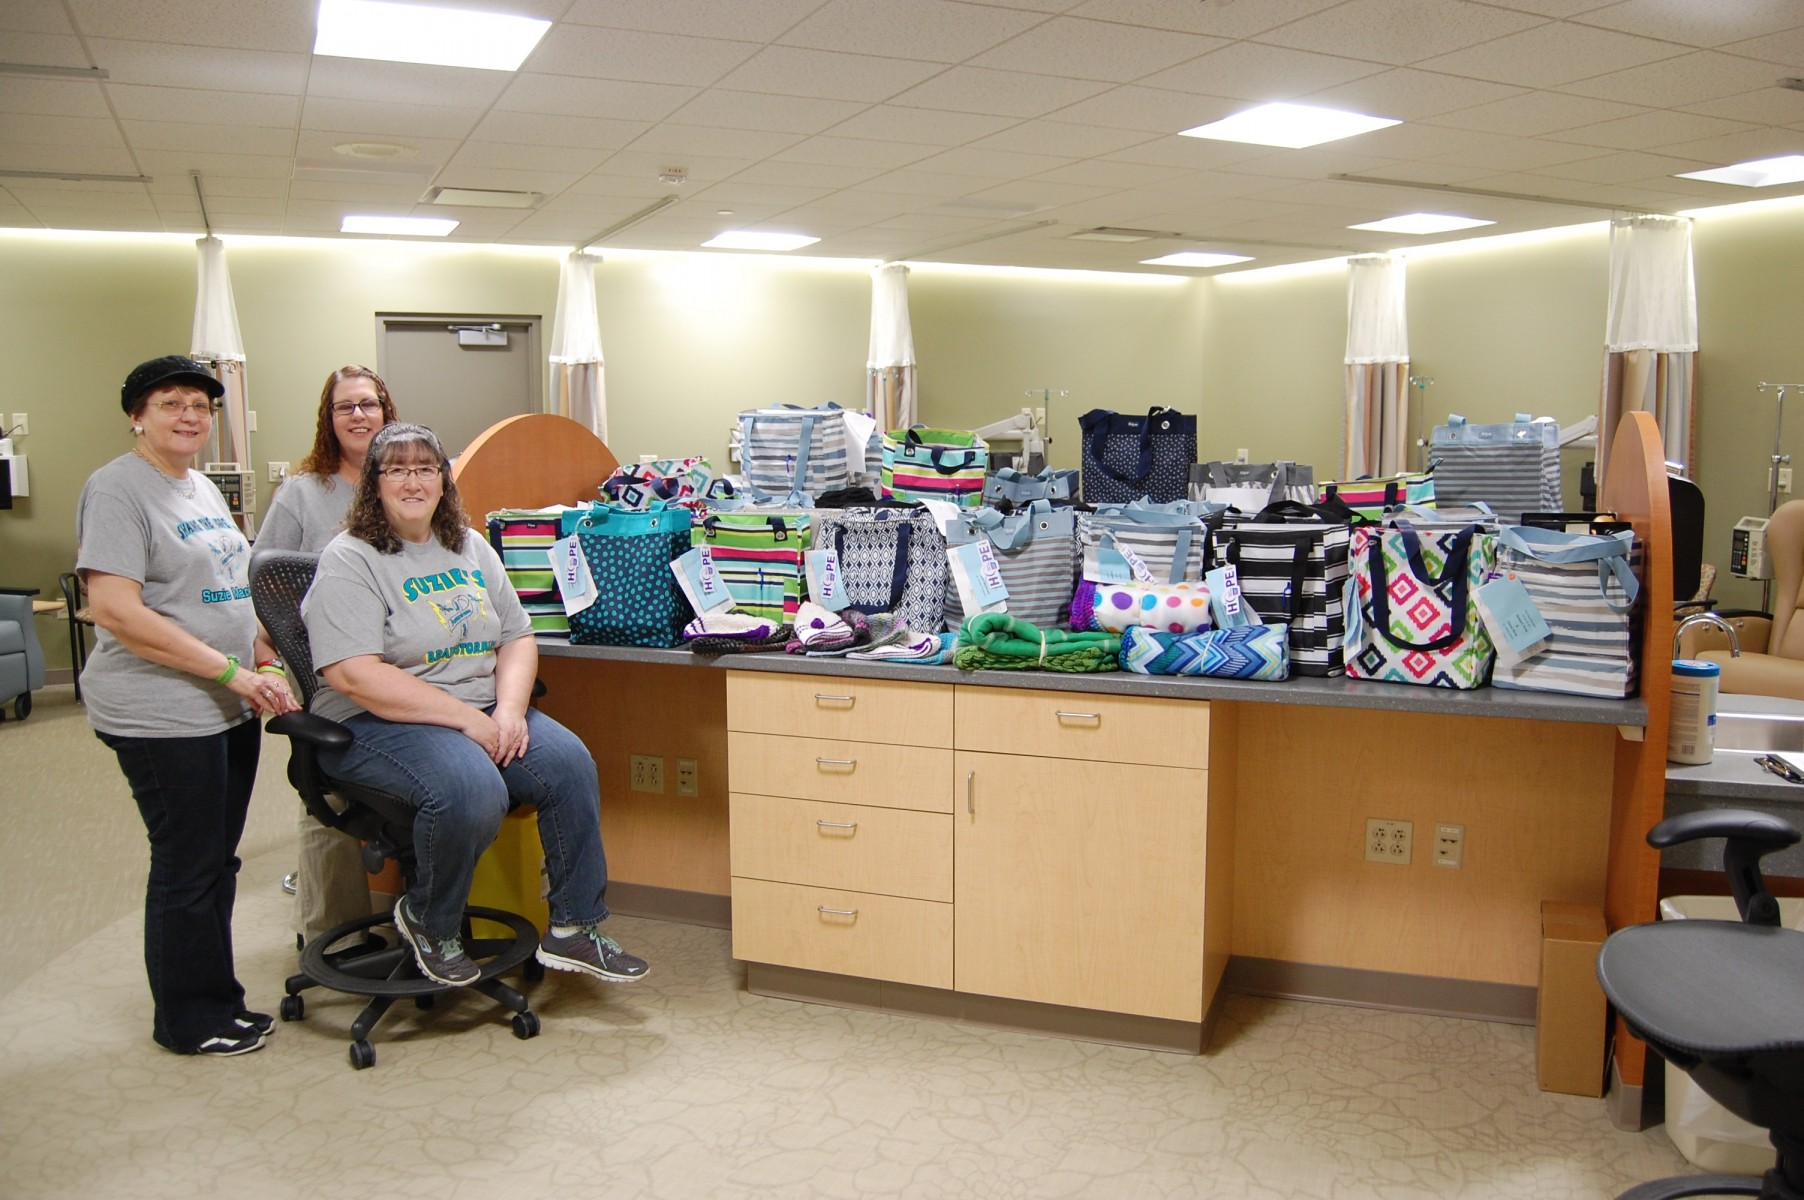 Chemo Care Bags 3 10 17